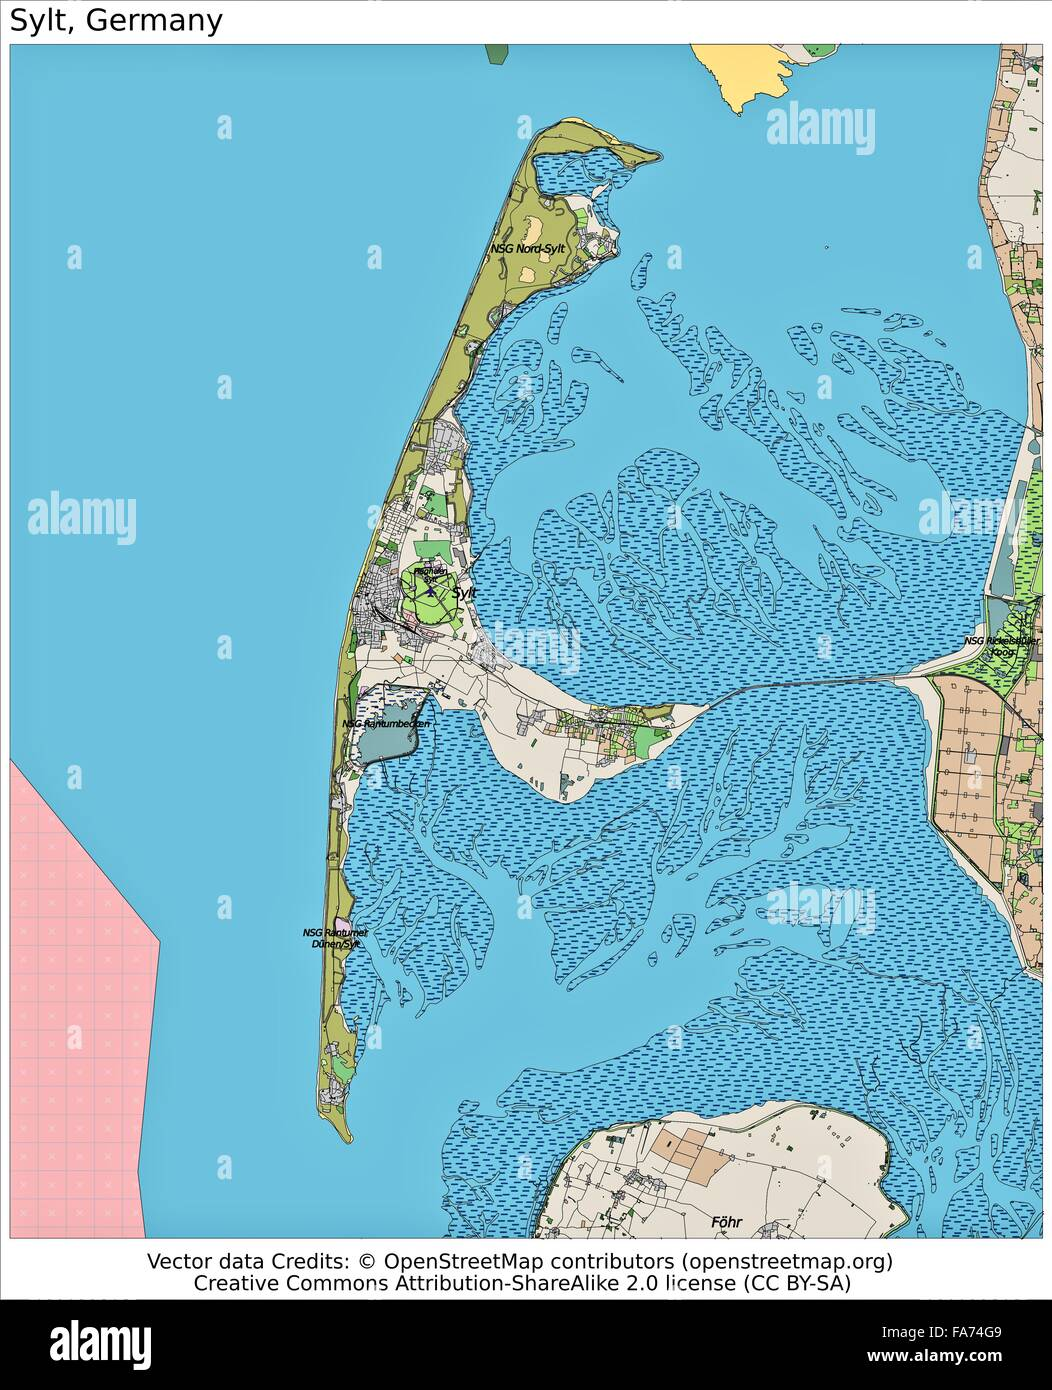 sylt germany location map